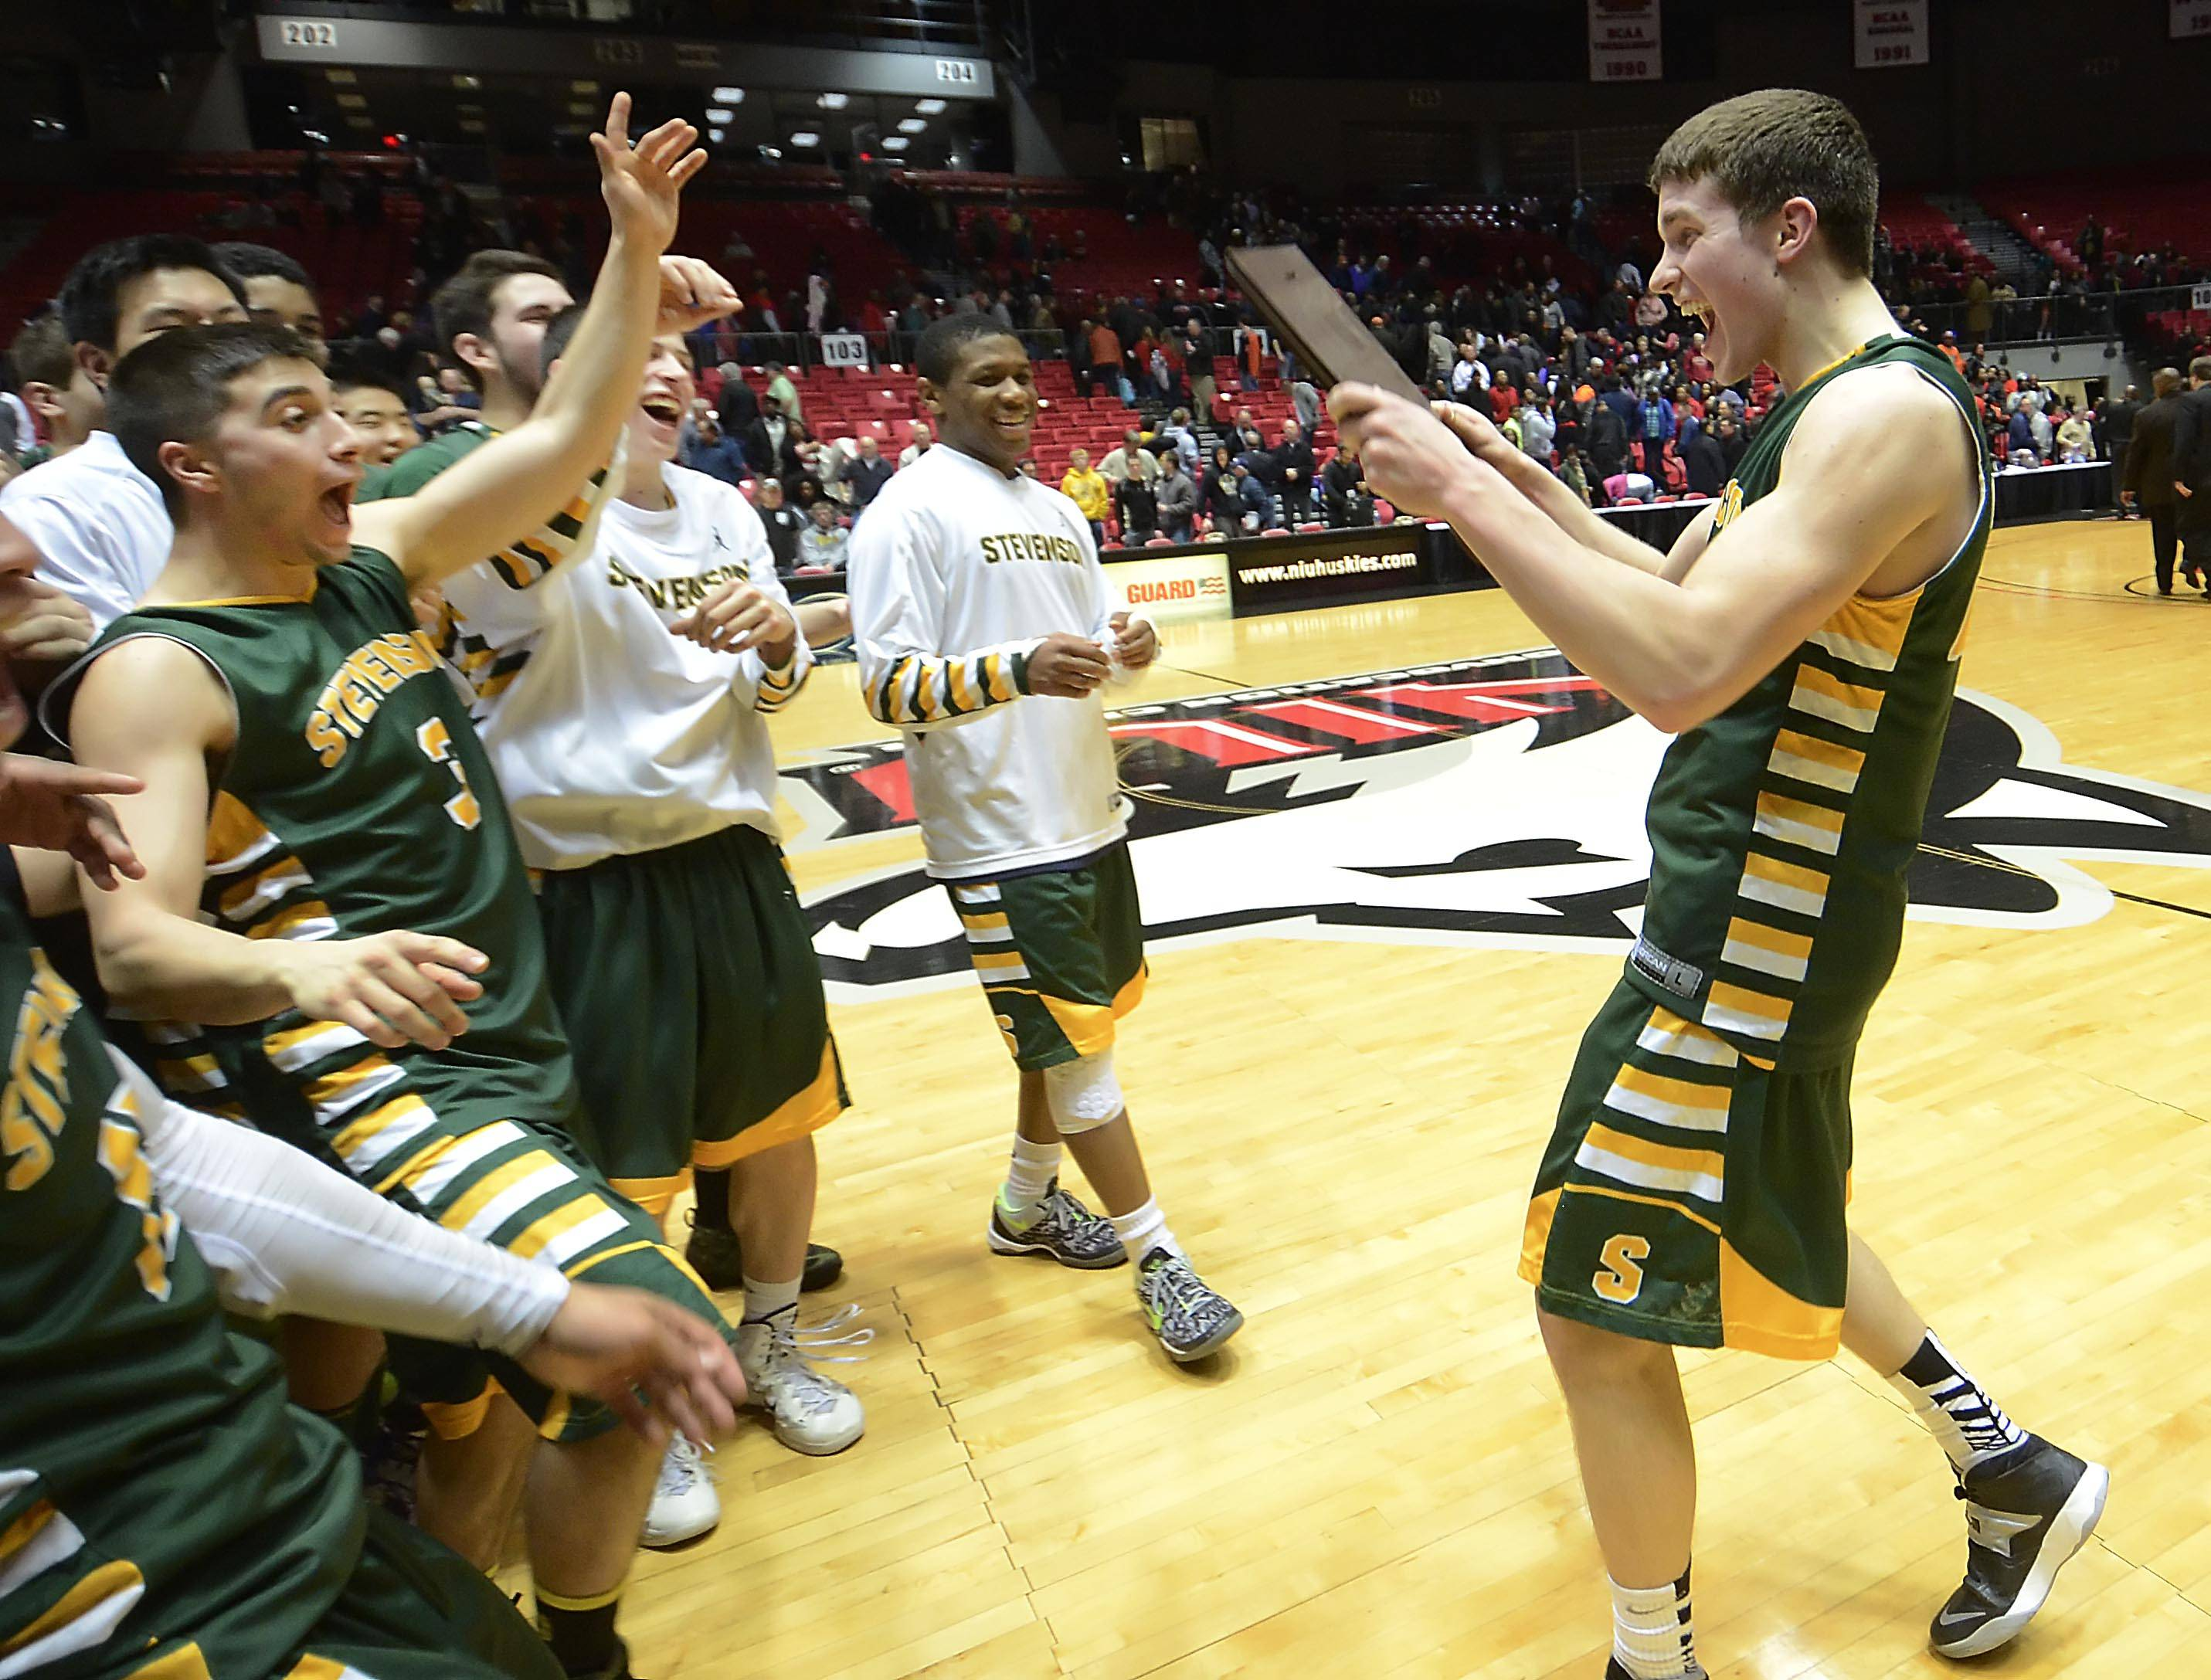 Stevenson's Matt Morrissey brings the championship plaque to his teammates after defeating Rockford Auburn in the Class 4A Northern Illinois University supersectional Tuesday.